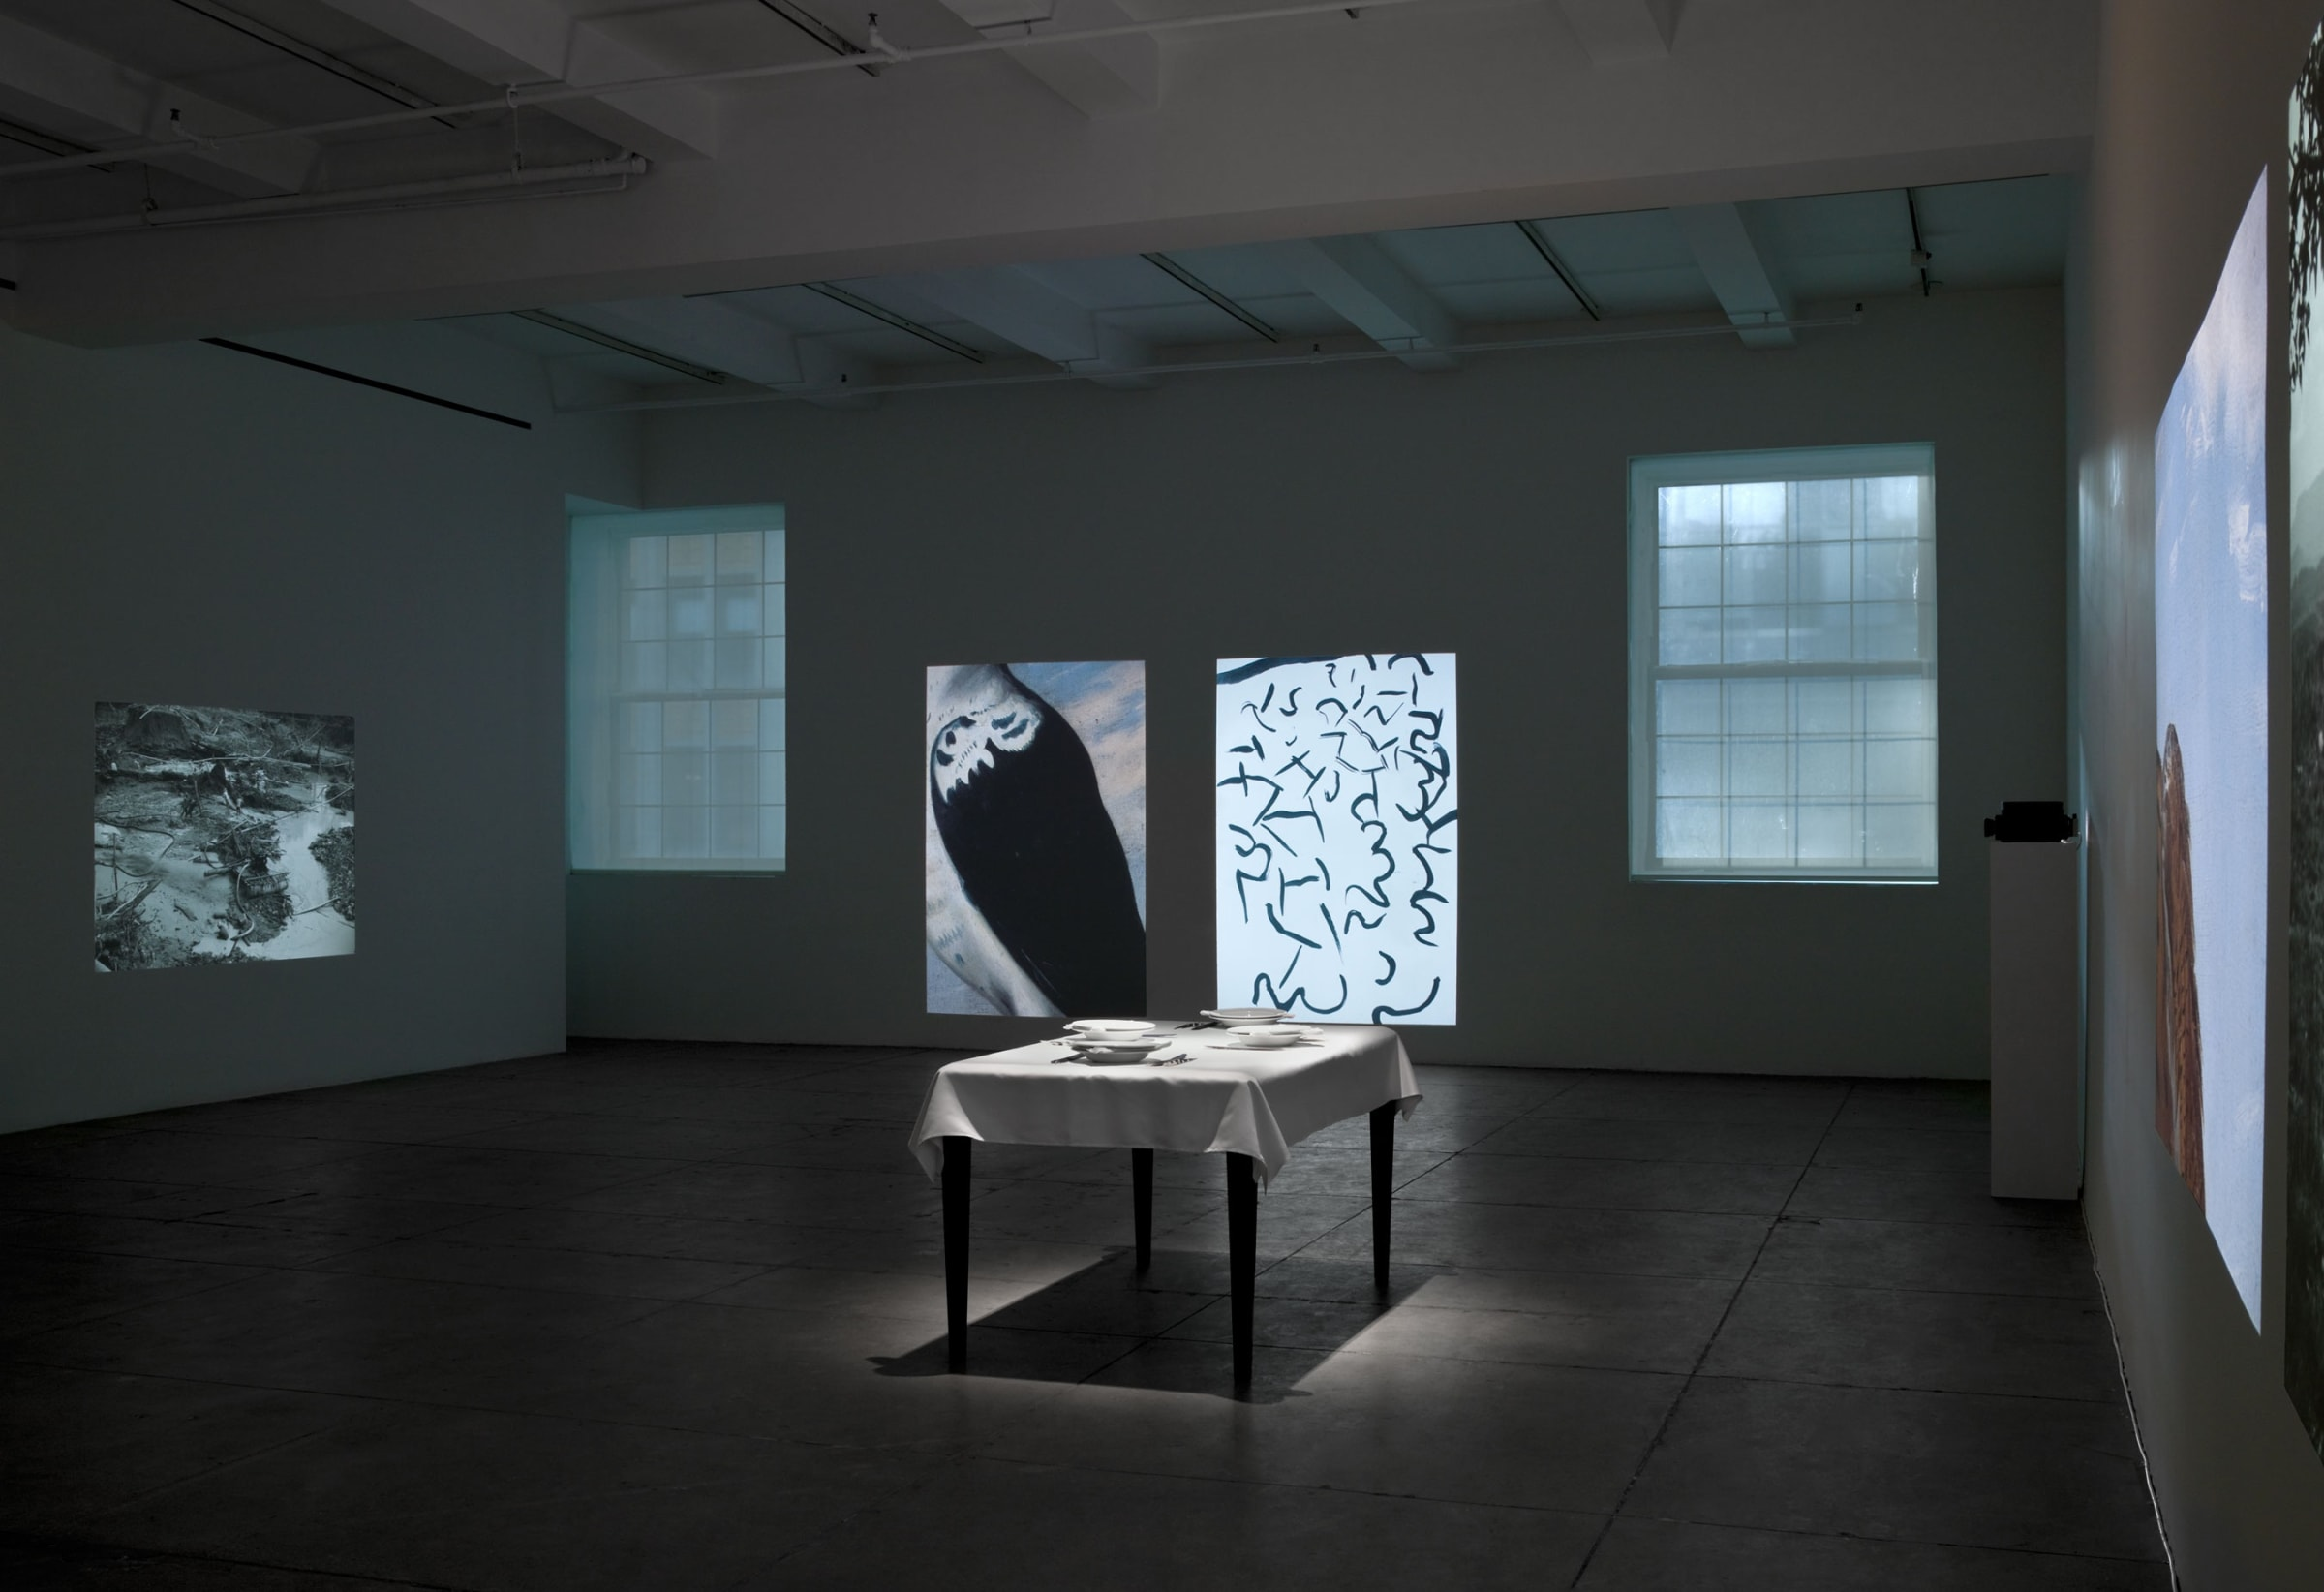 A dining table with a table cloth and white plates in the middle of the room is surrounded by large projections of black-and-white landscapes, birds, feather-like patterns and the sky.